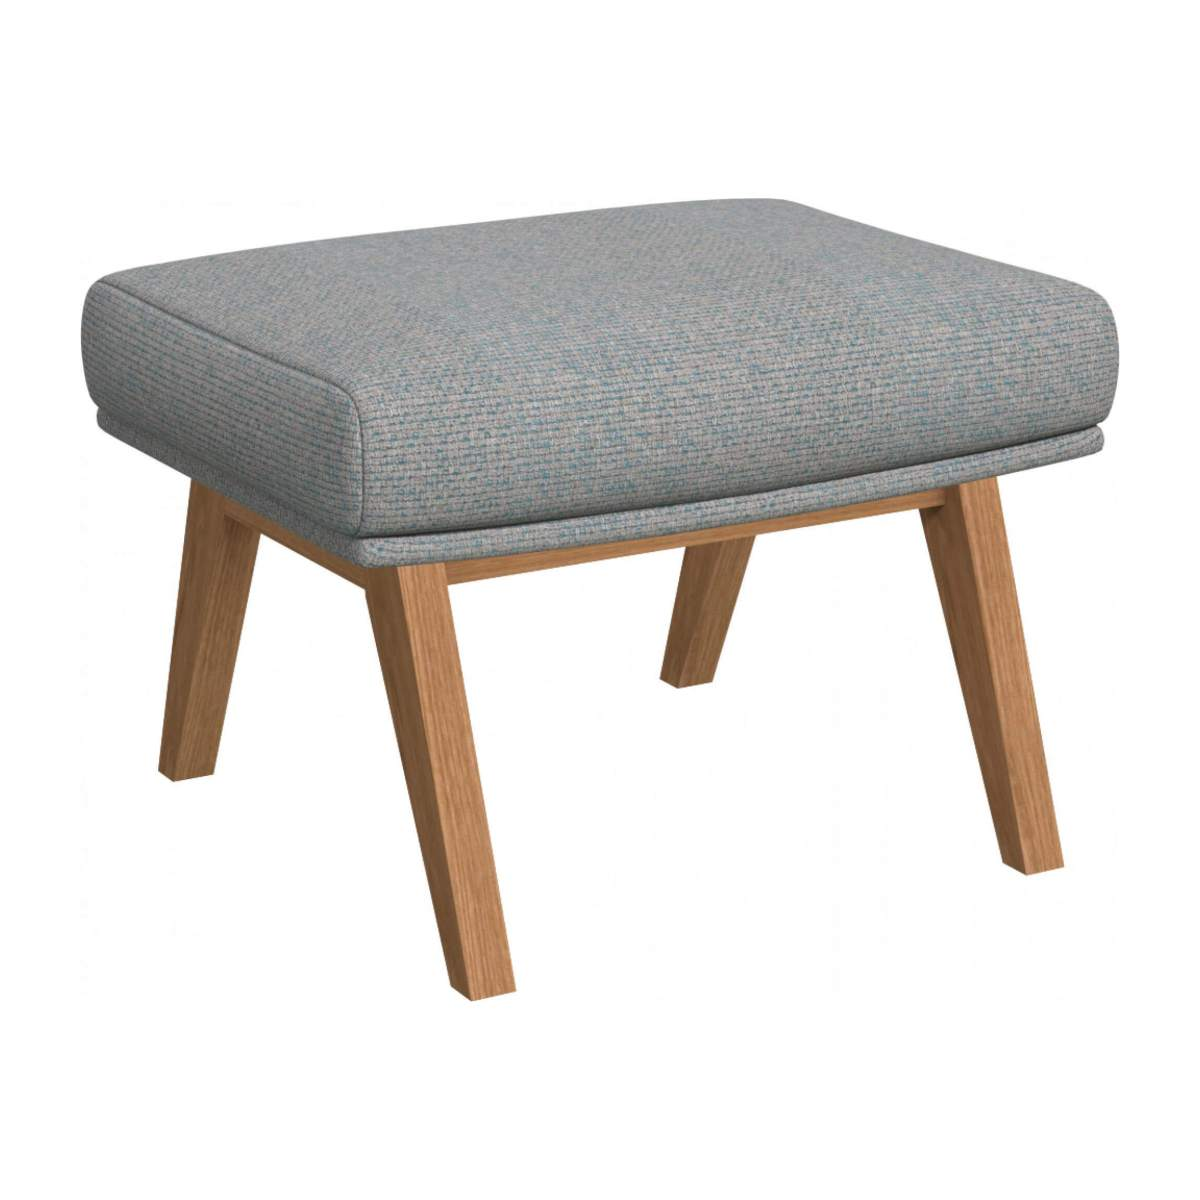 Footstool in Lecce fabric, blue reef with oak legs n°2